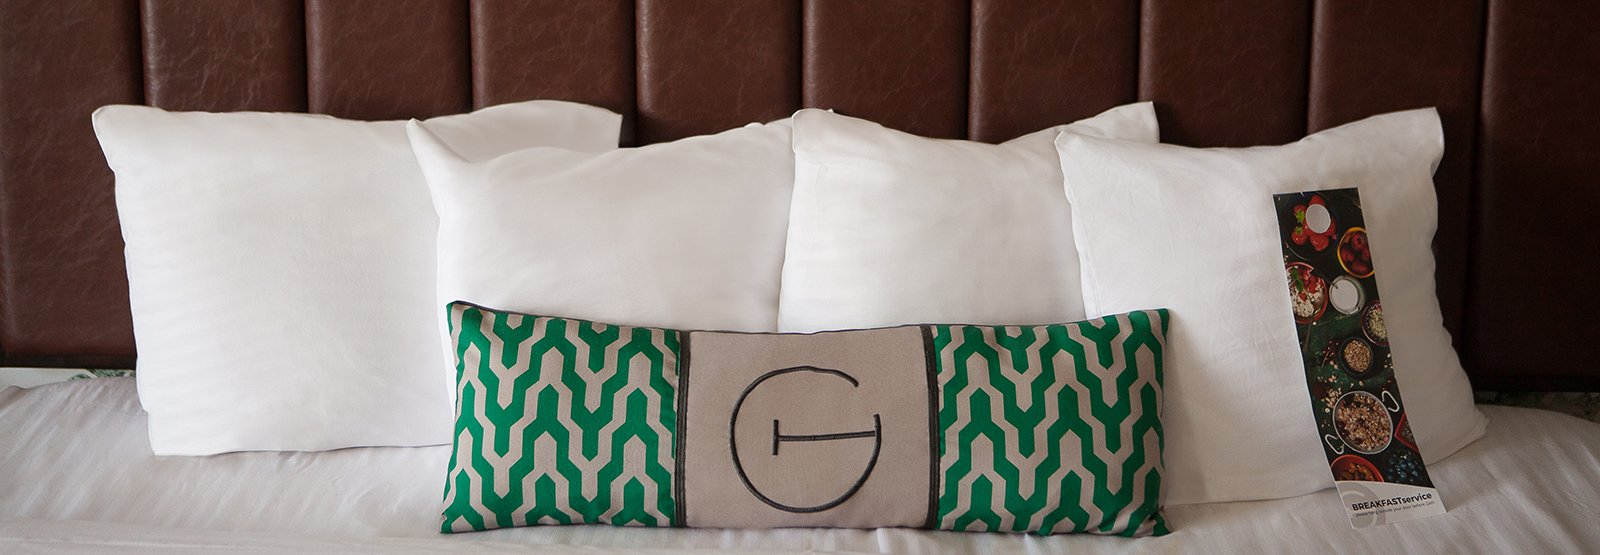 pillows on a bed